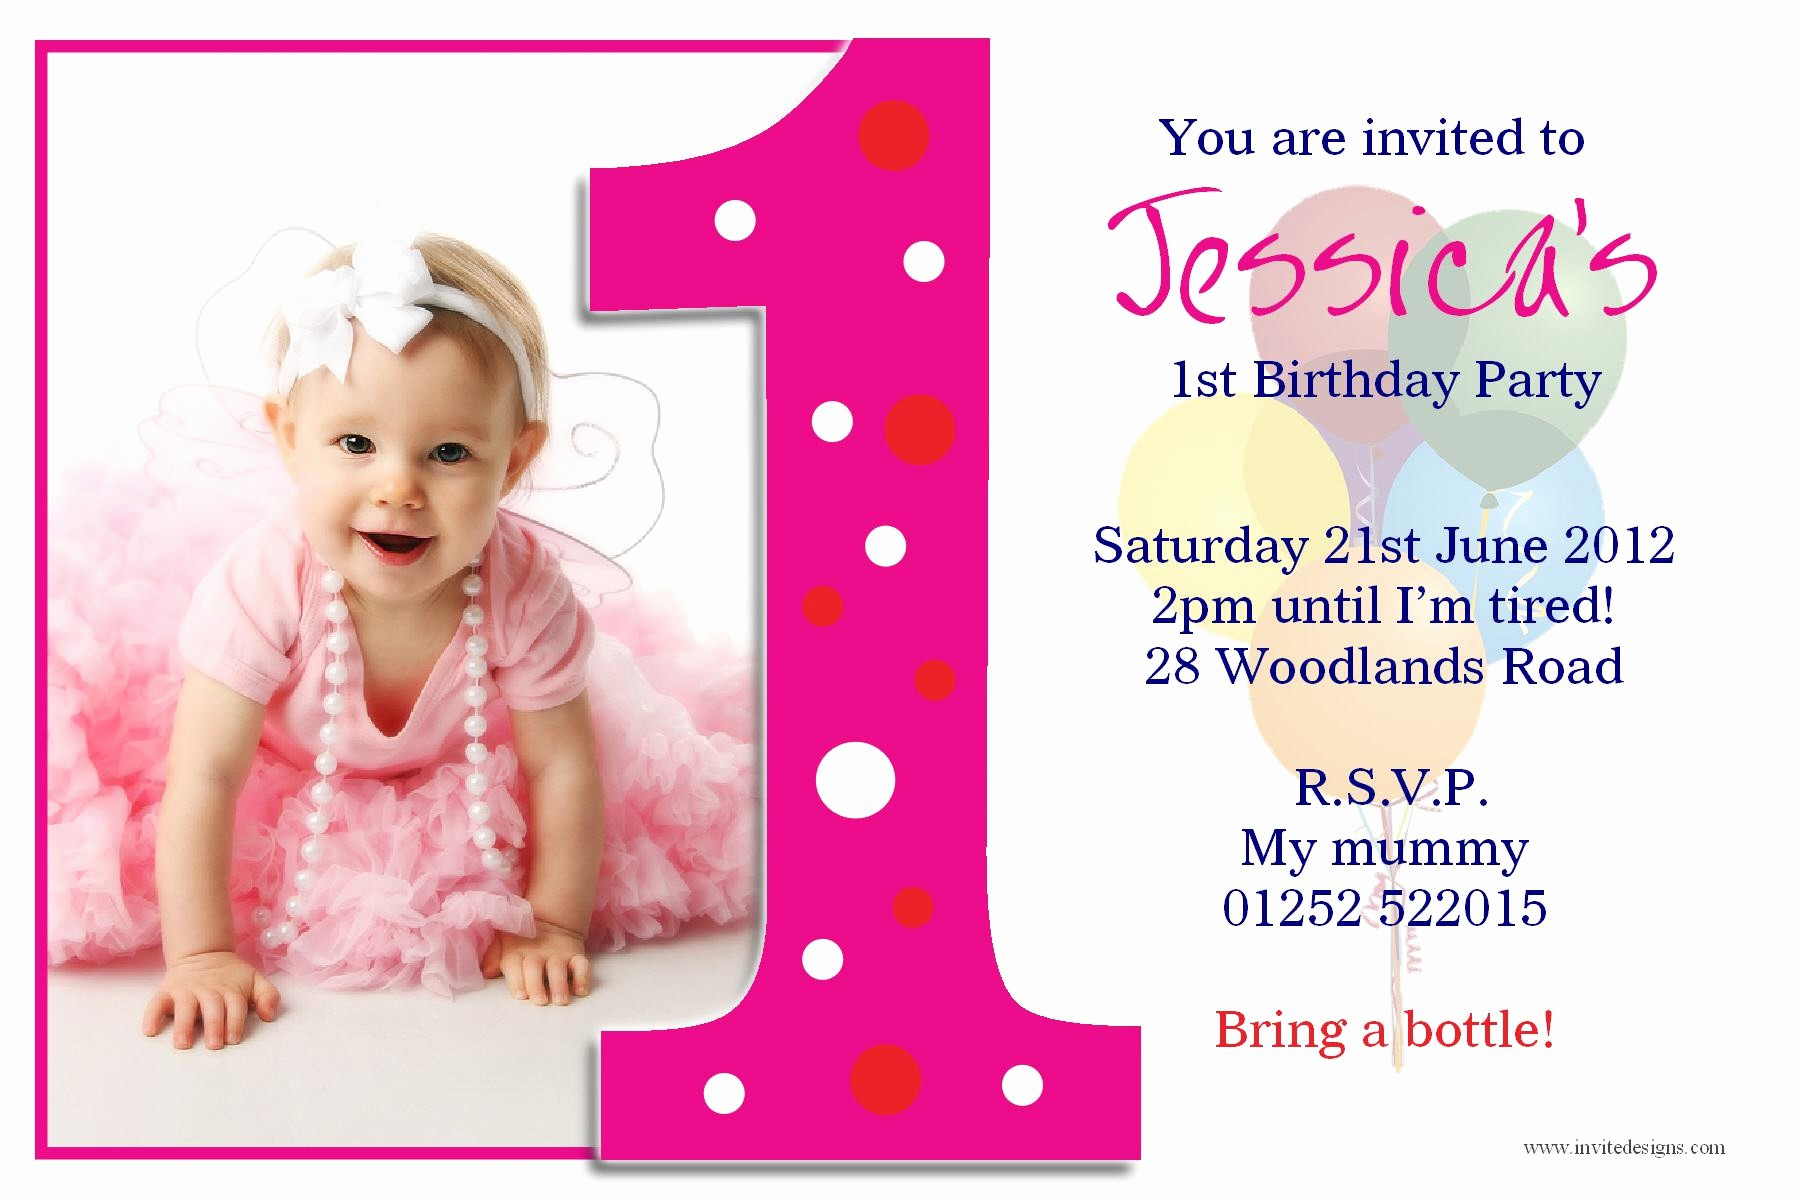 Birthday Party Invitation Card Template Elegant Birthday Invitation Card Birthday Invitation Card